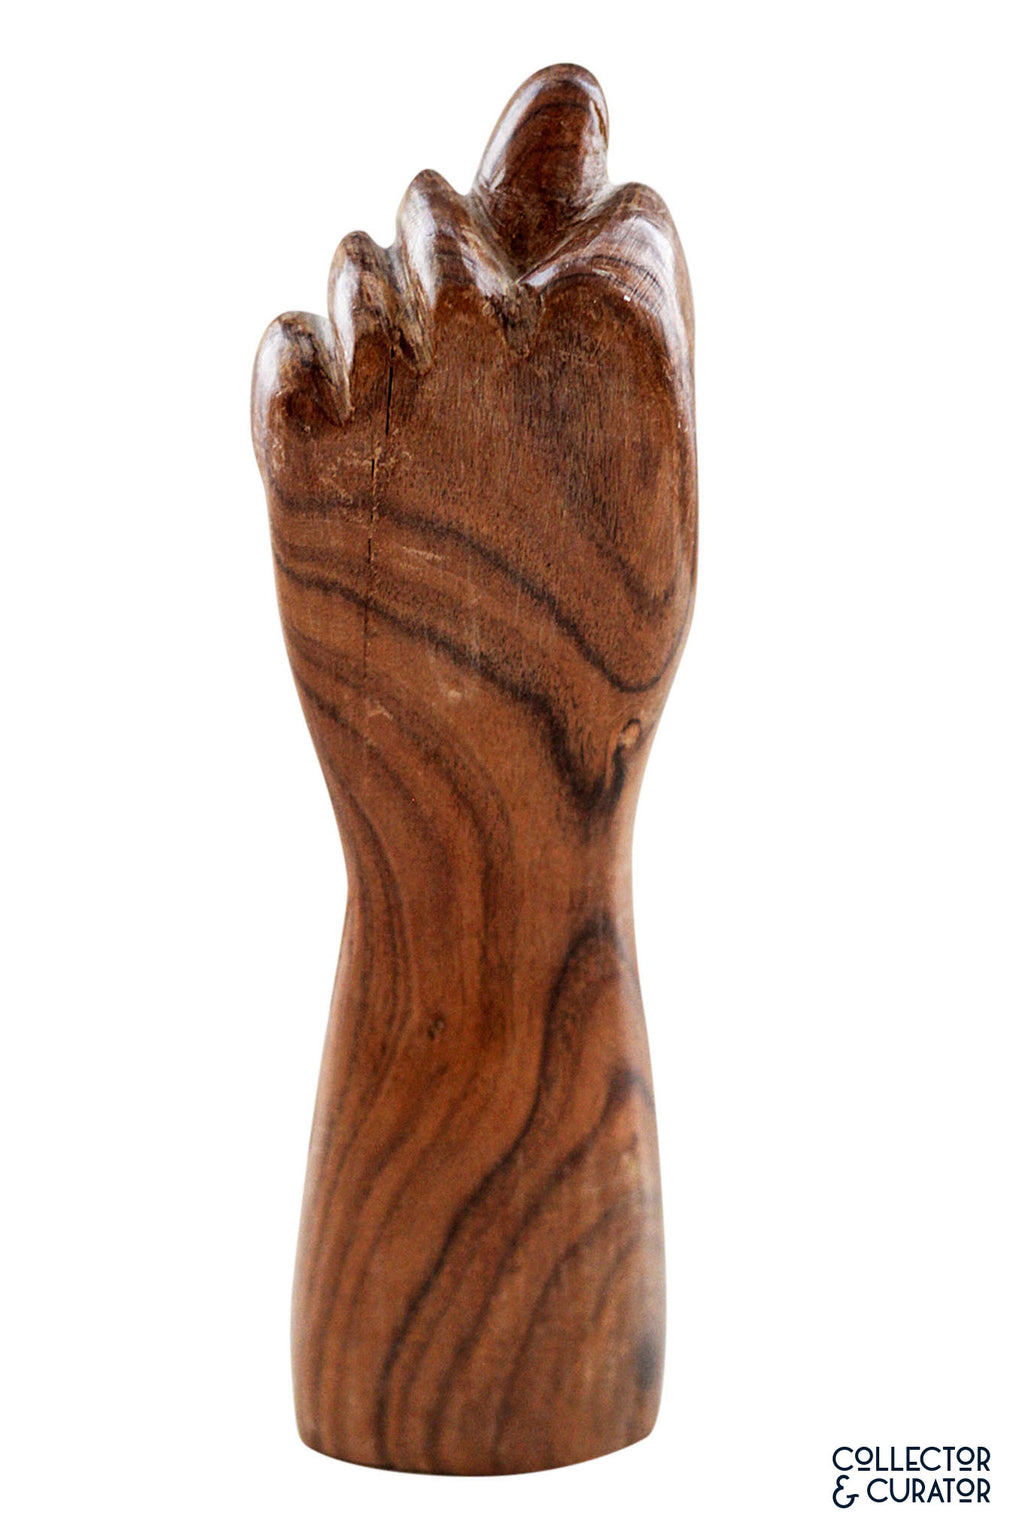 Large Hand Carved Wooden Figa - Collector & Curator